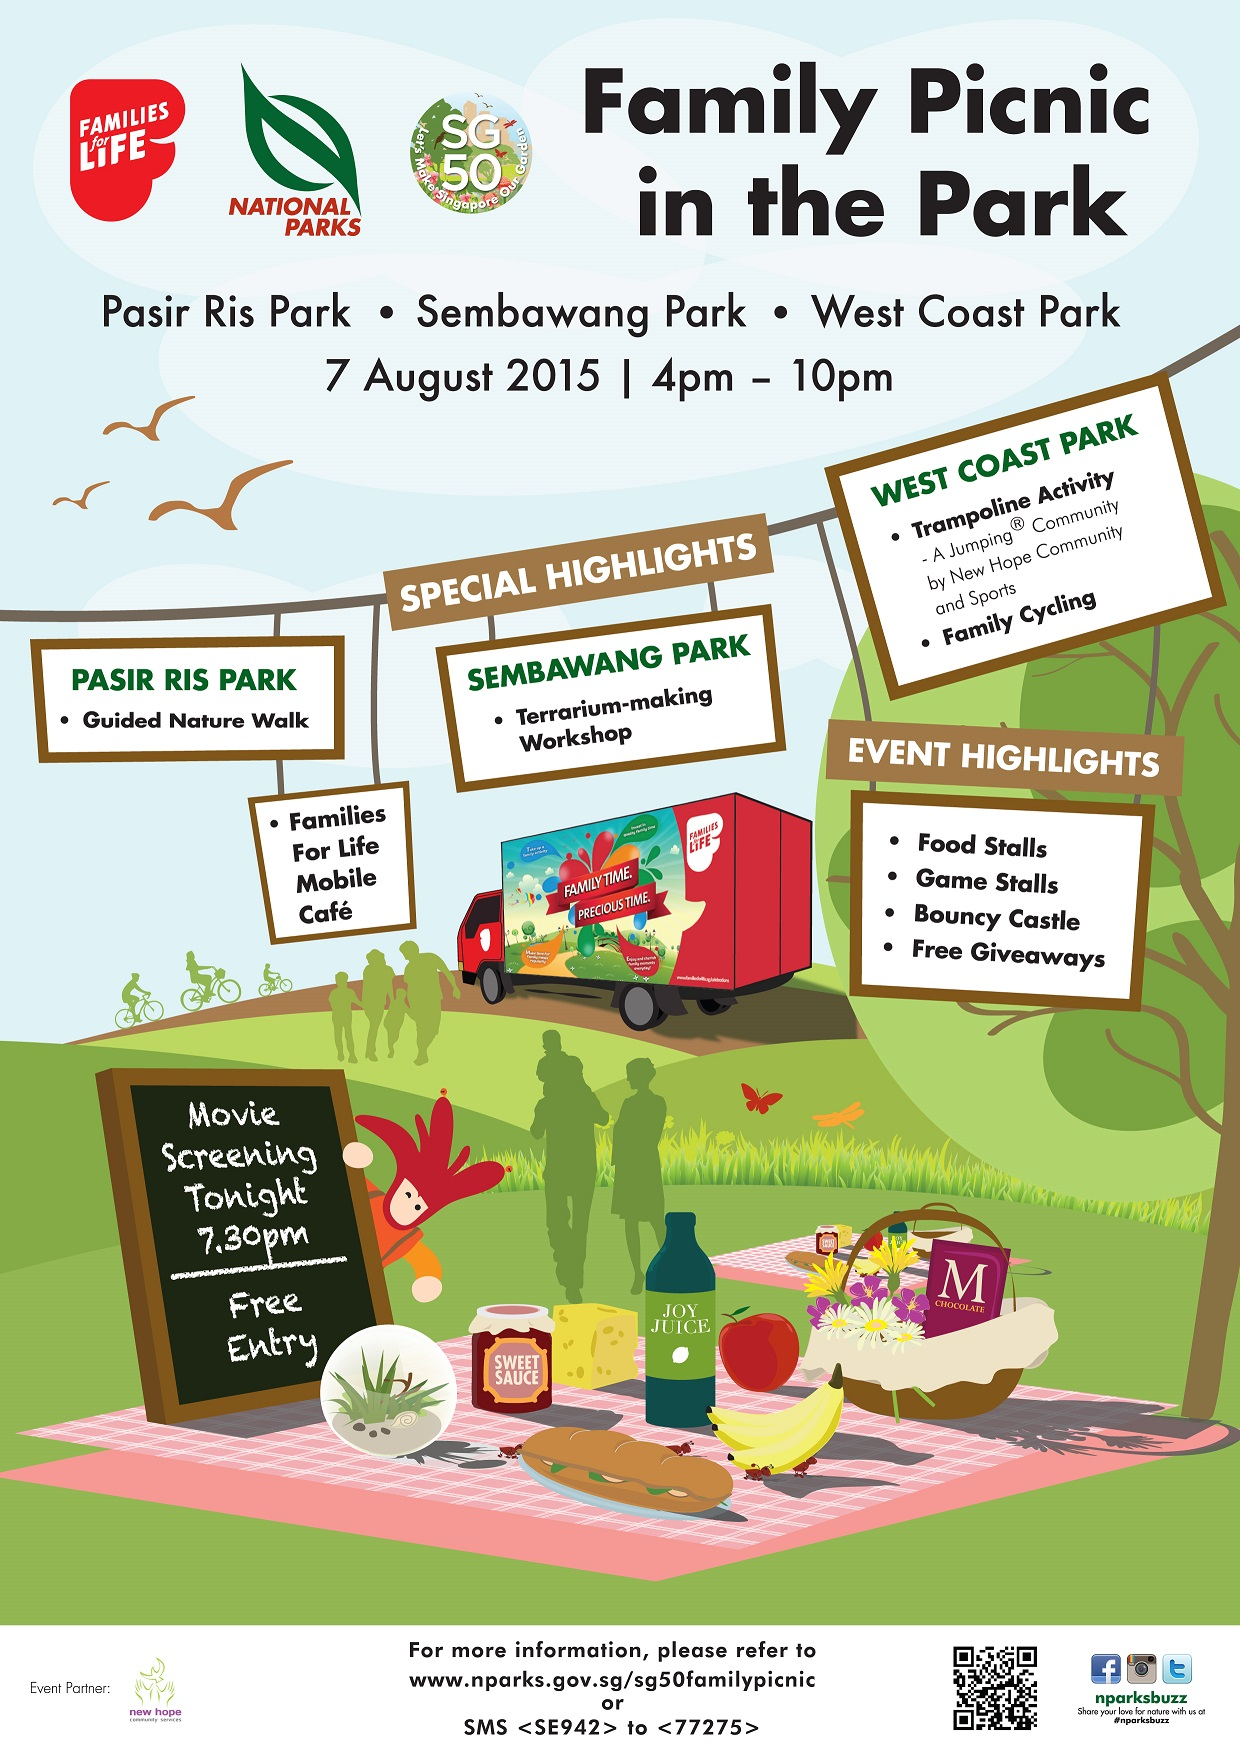 SG50 Family Picnic in the Park - - - What's On ...